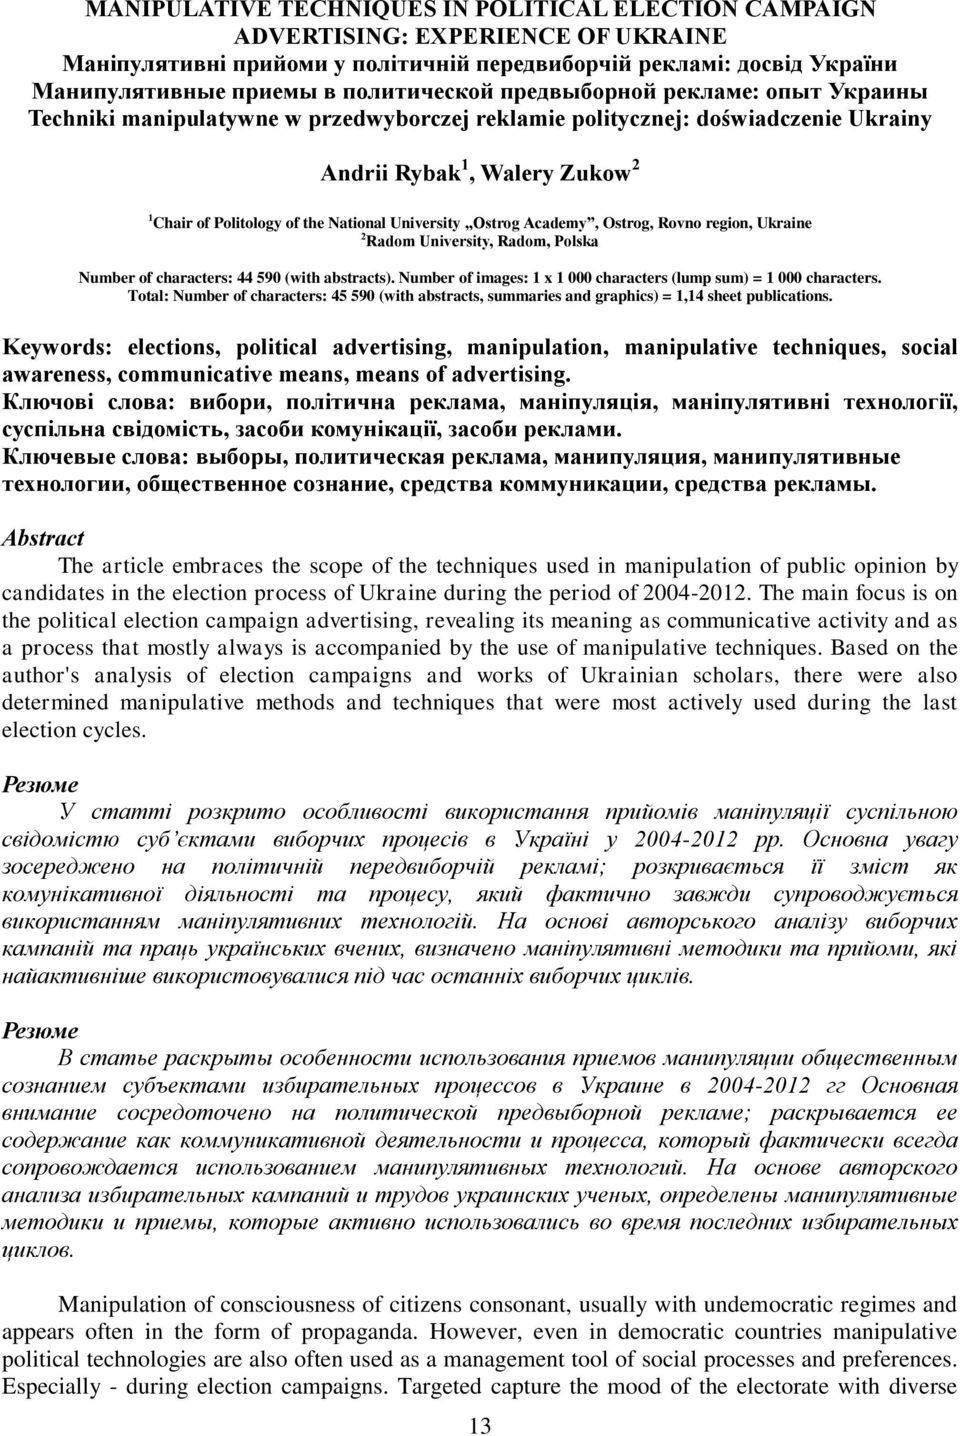 Ostrog Academy, Ostrog, Rovno region, Ukraine 2 Radom University, Radom, Polska Number of characters: 44 590 (with abstracts). Number of images: 1 x 1 000 characters (lump sum) = 1 000 characters.